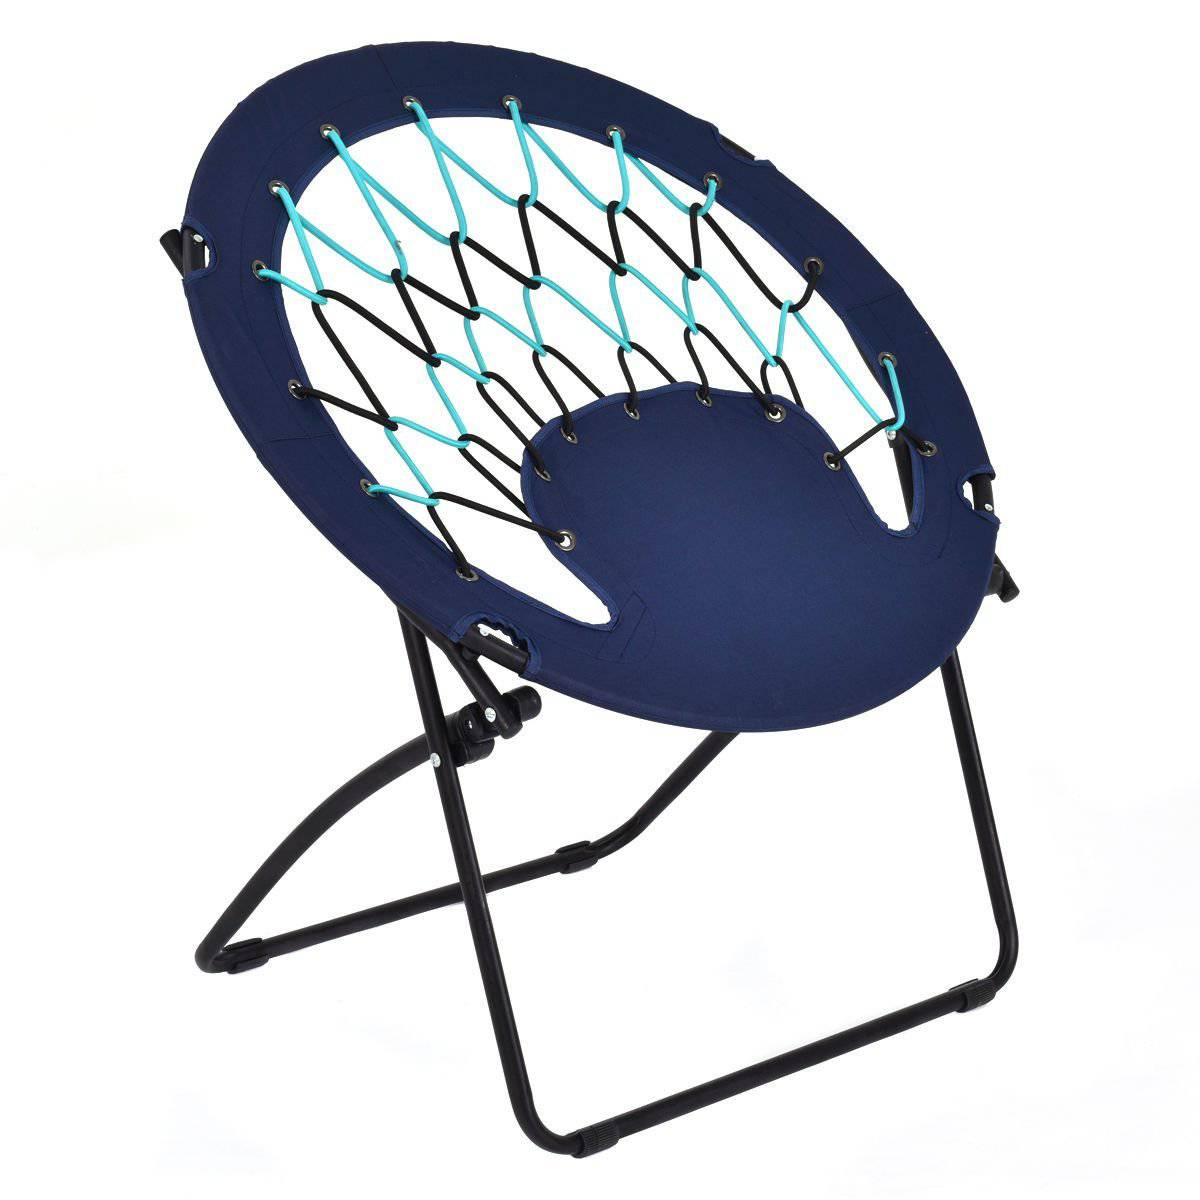 Bungi Chair Best 5 Round Bungee Chairs Reviews Buy 7 Best Bunjo